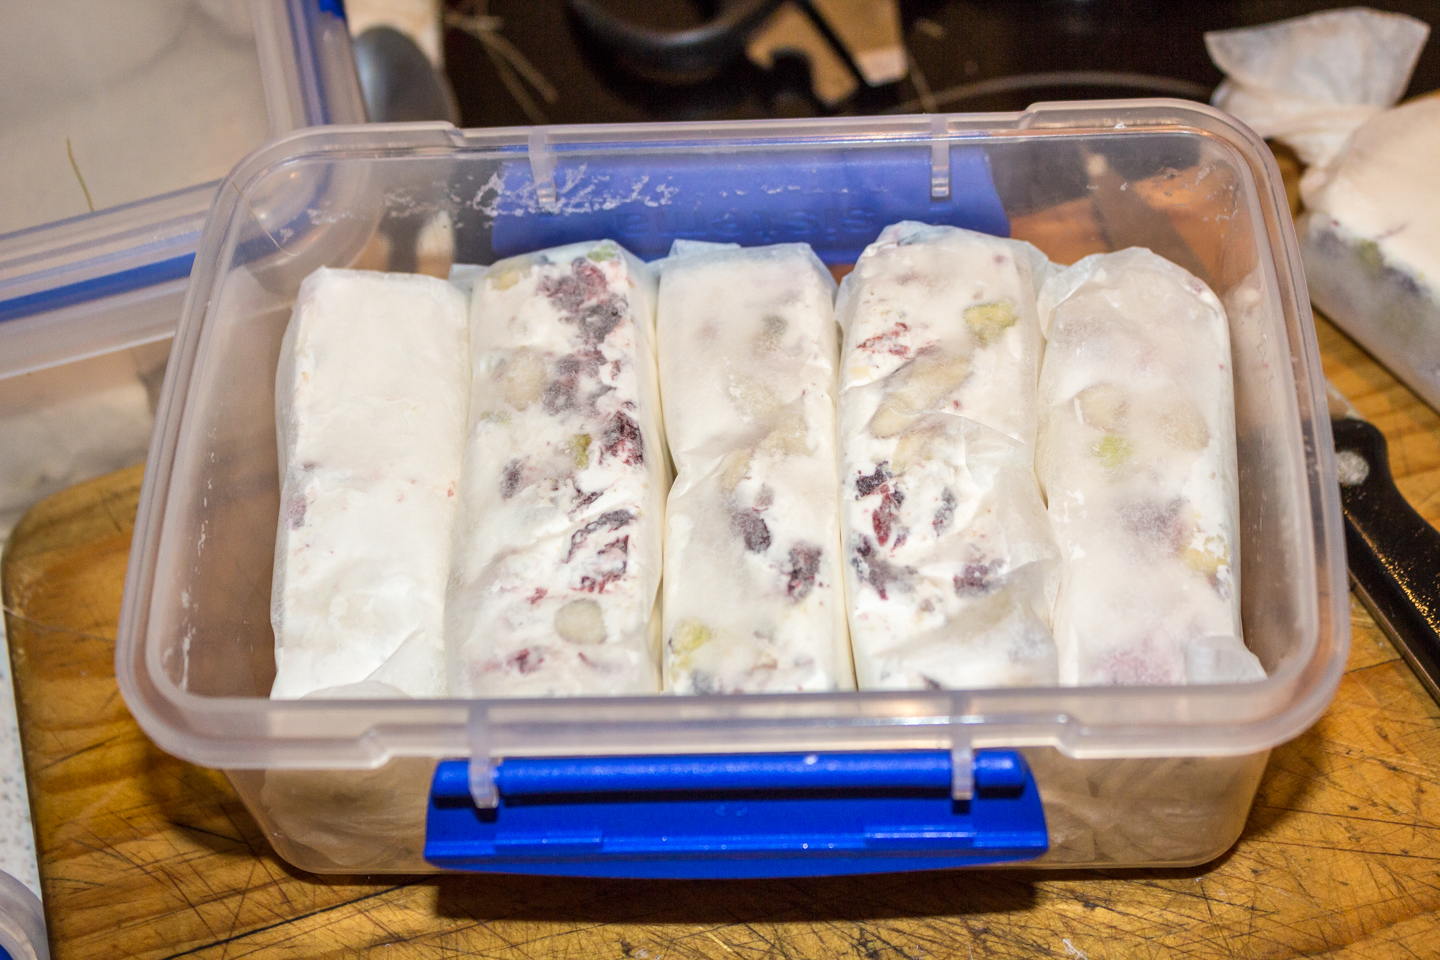 wrapped nougat in an air tight container